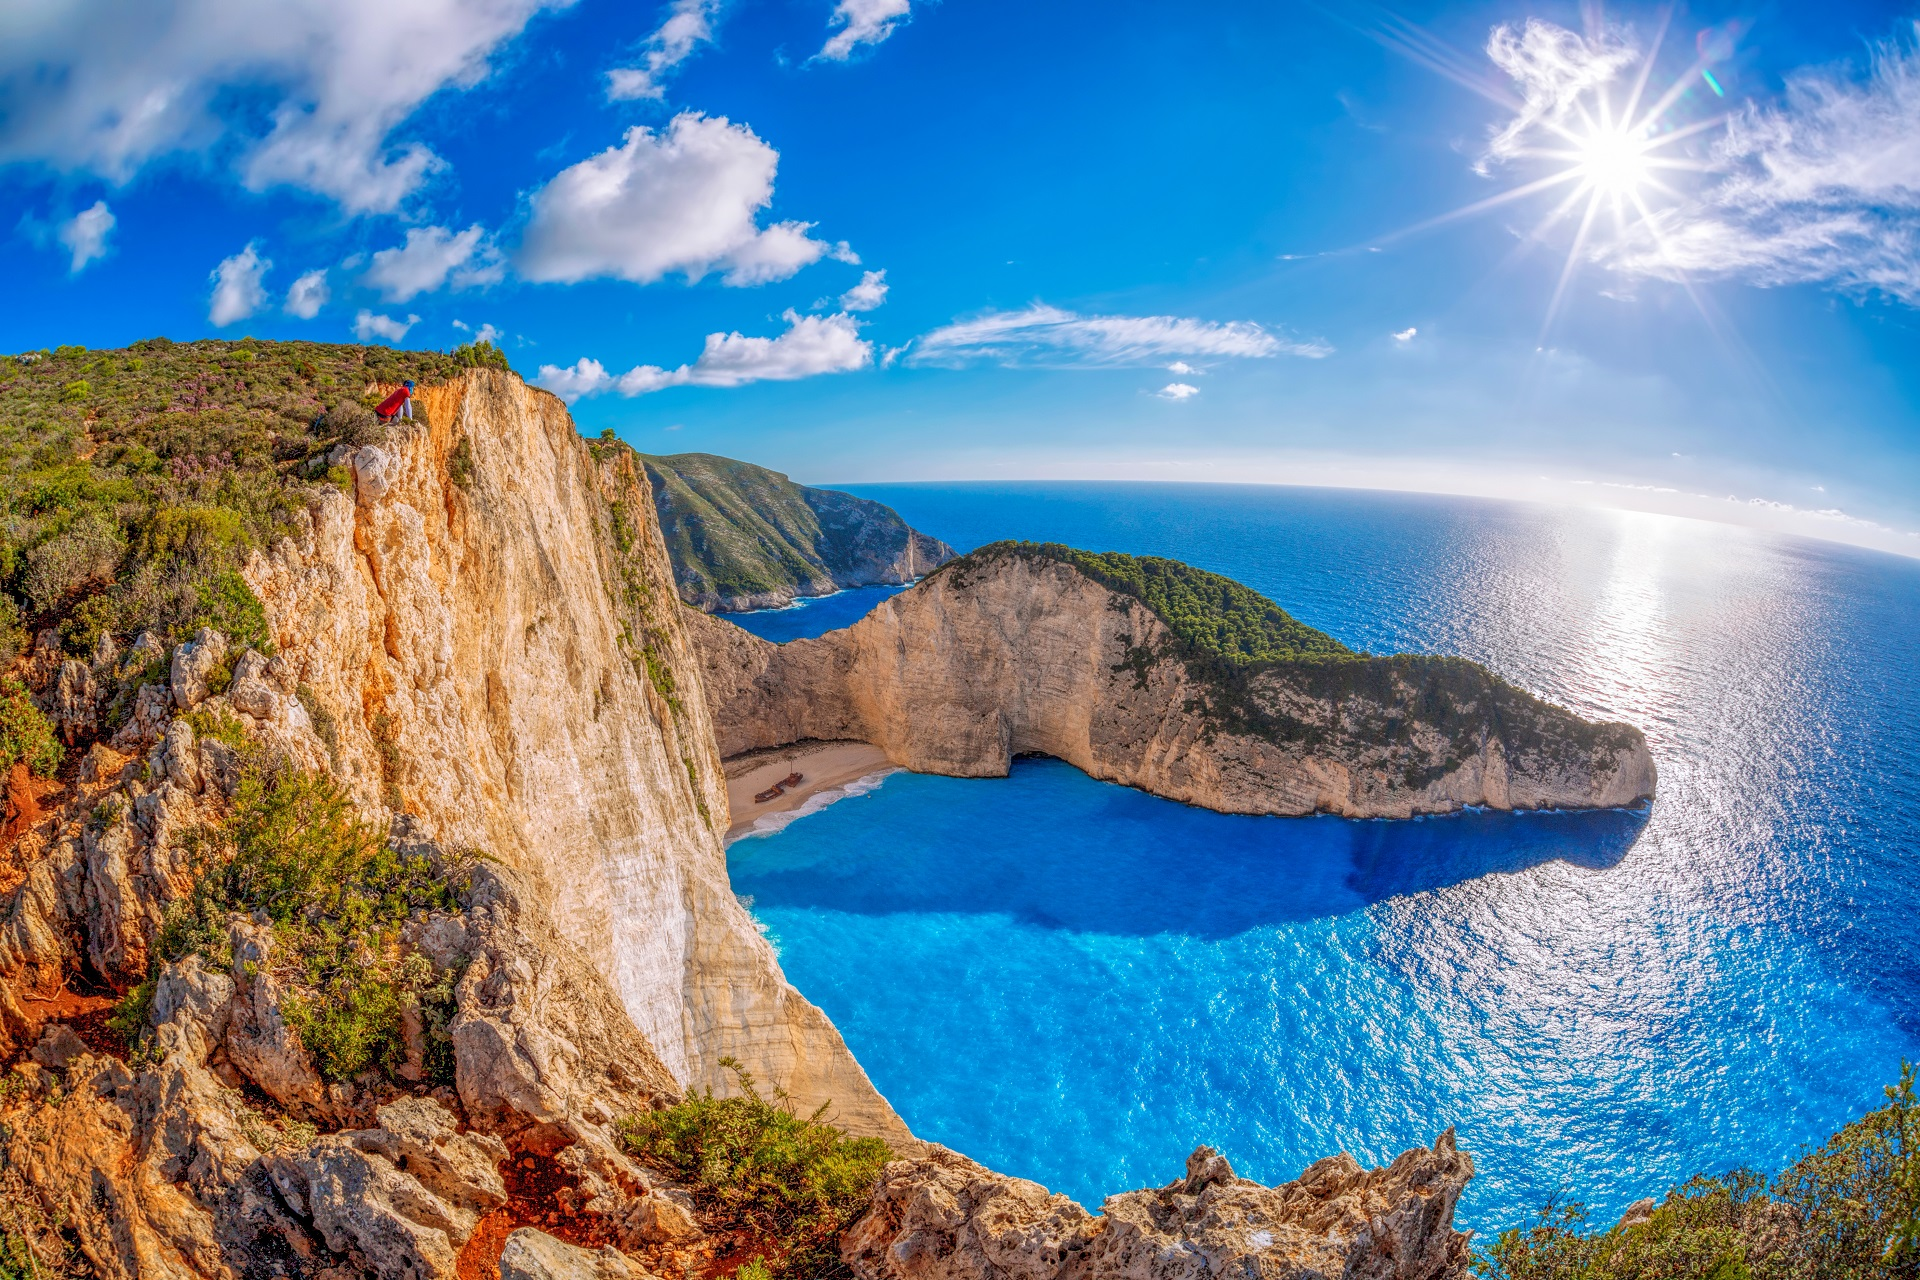 Navagio or Shipwreck Beach